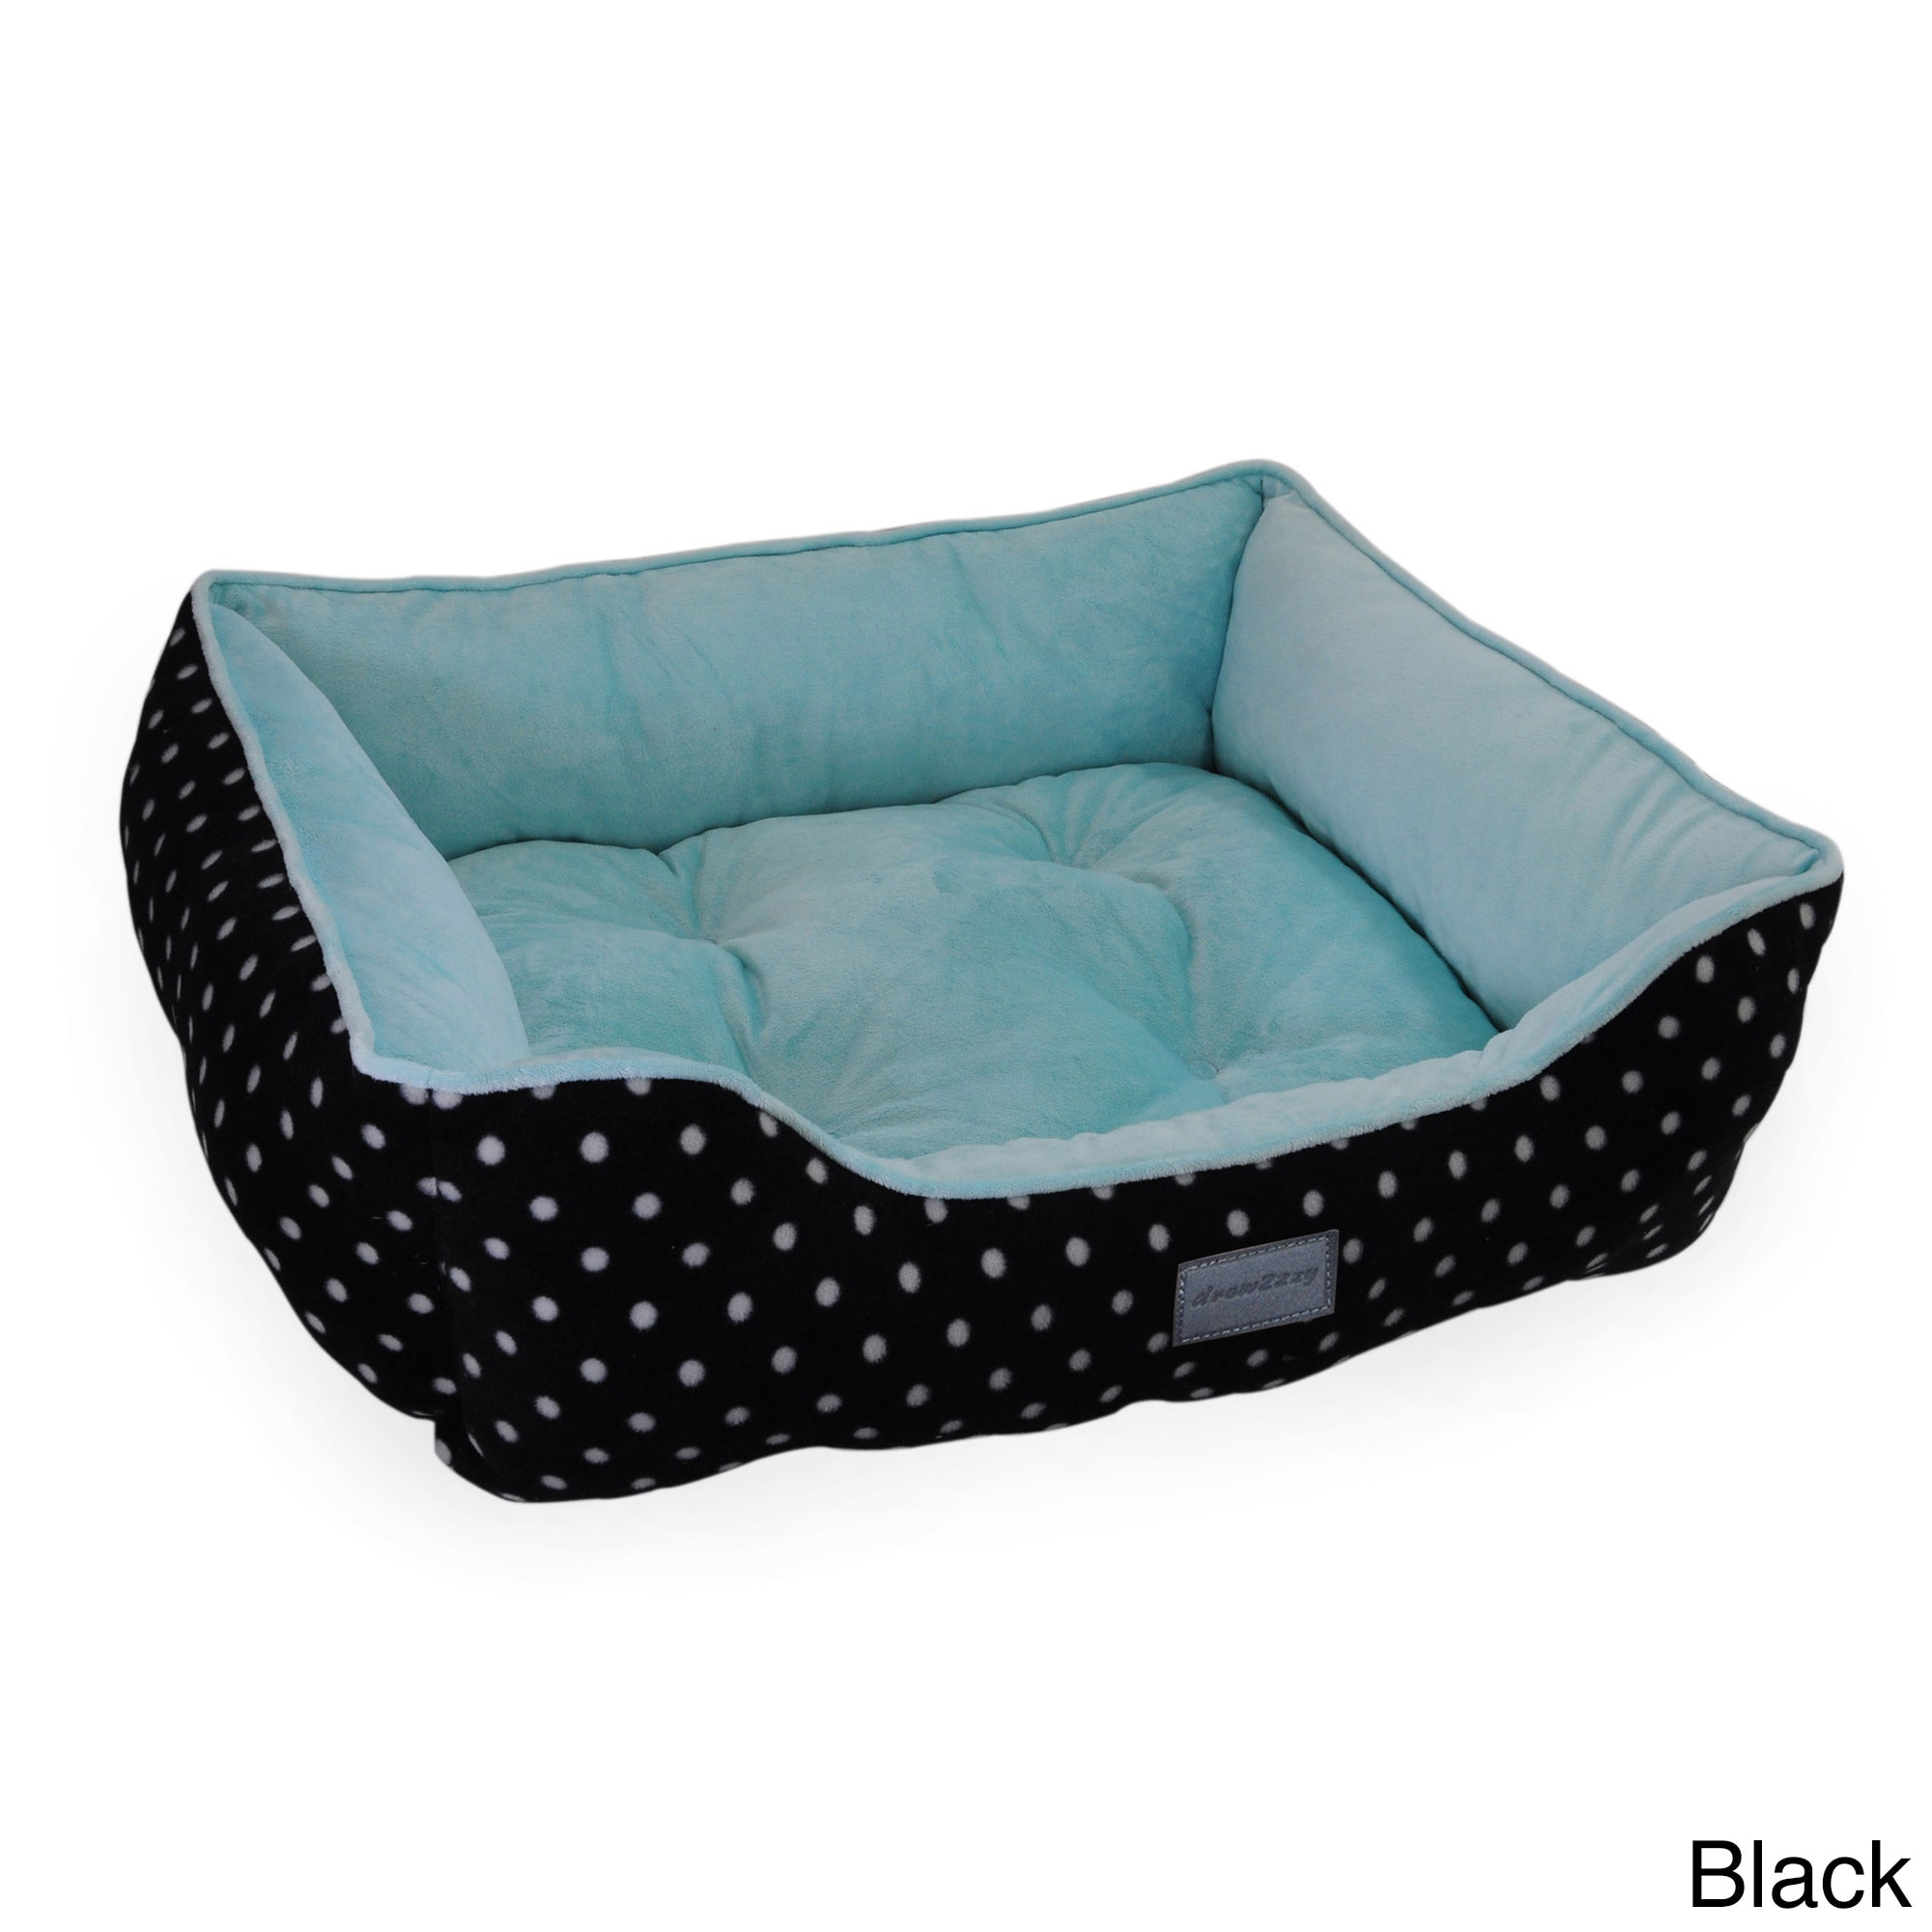 Attractive drowzzzy Polka Dots Print Plush Bolster Pet Bed - Free Shipping On  BJ11